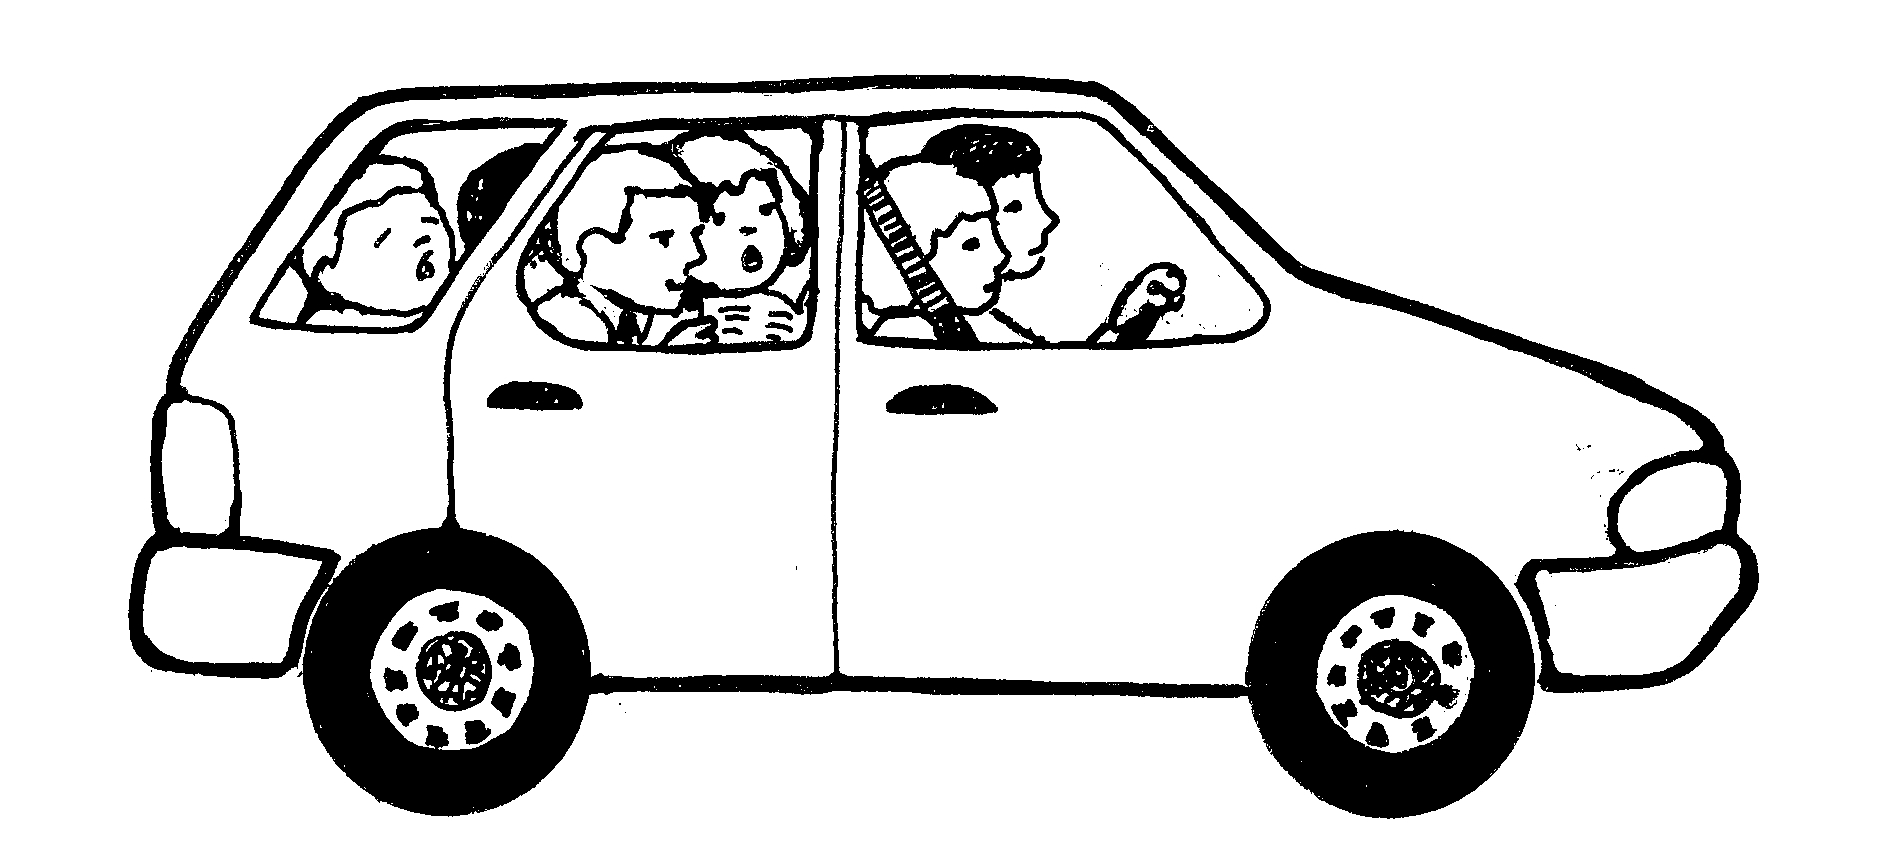 Line Art clipart car About clipart free vector 2